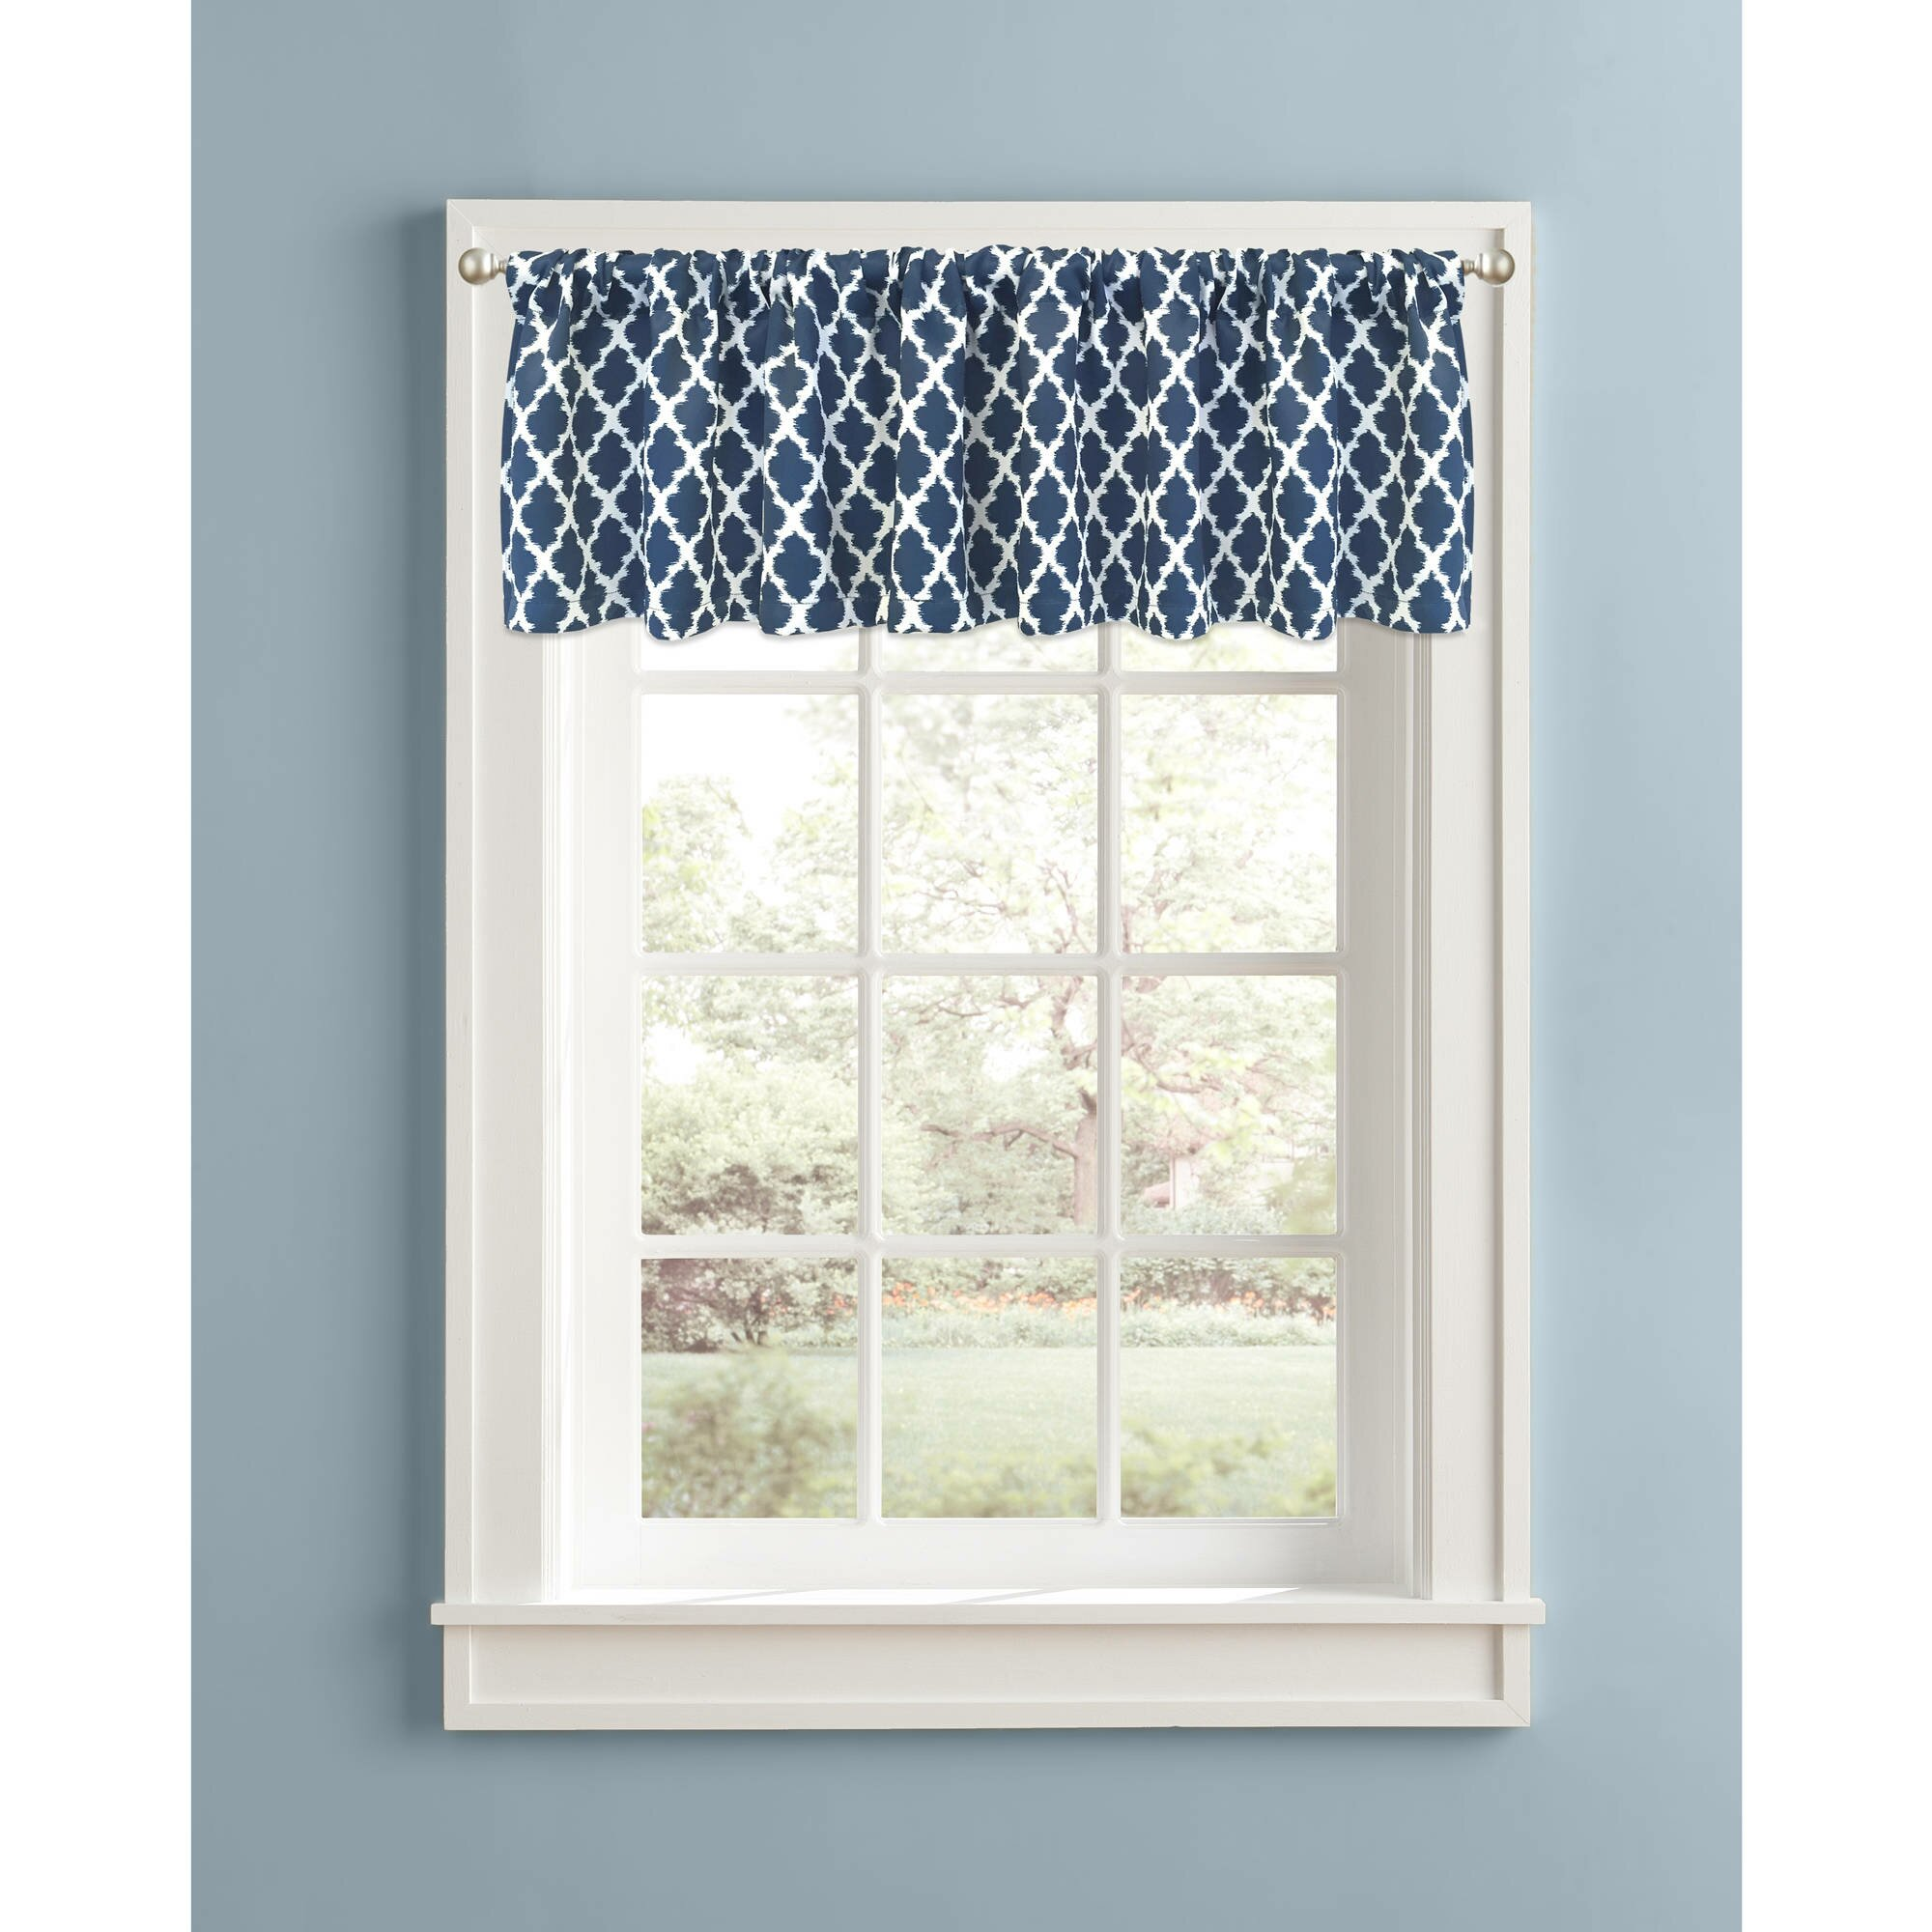 Valance Curtains for Living Room | Dining Room Valances | Living Room Valances